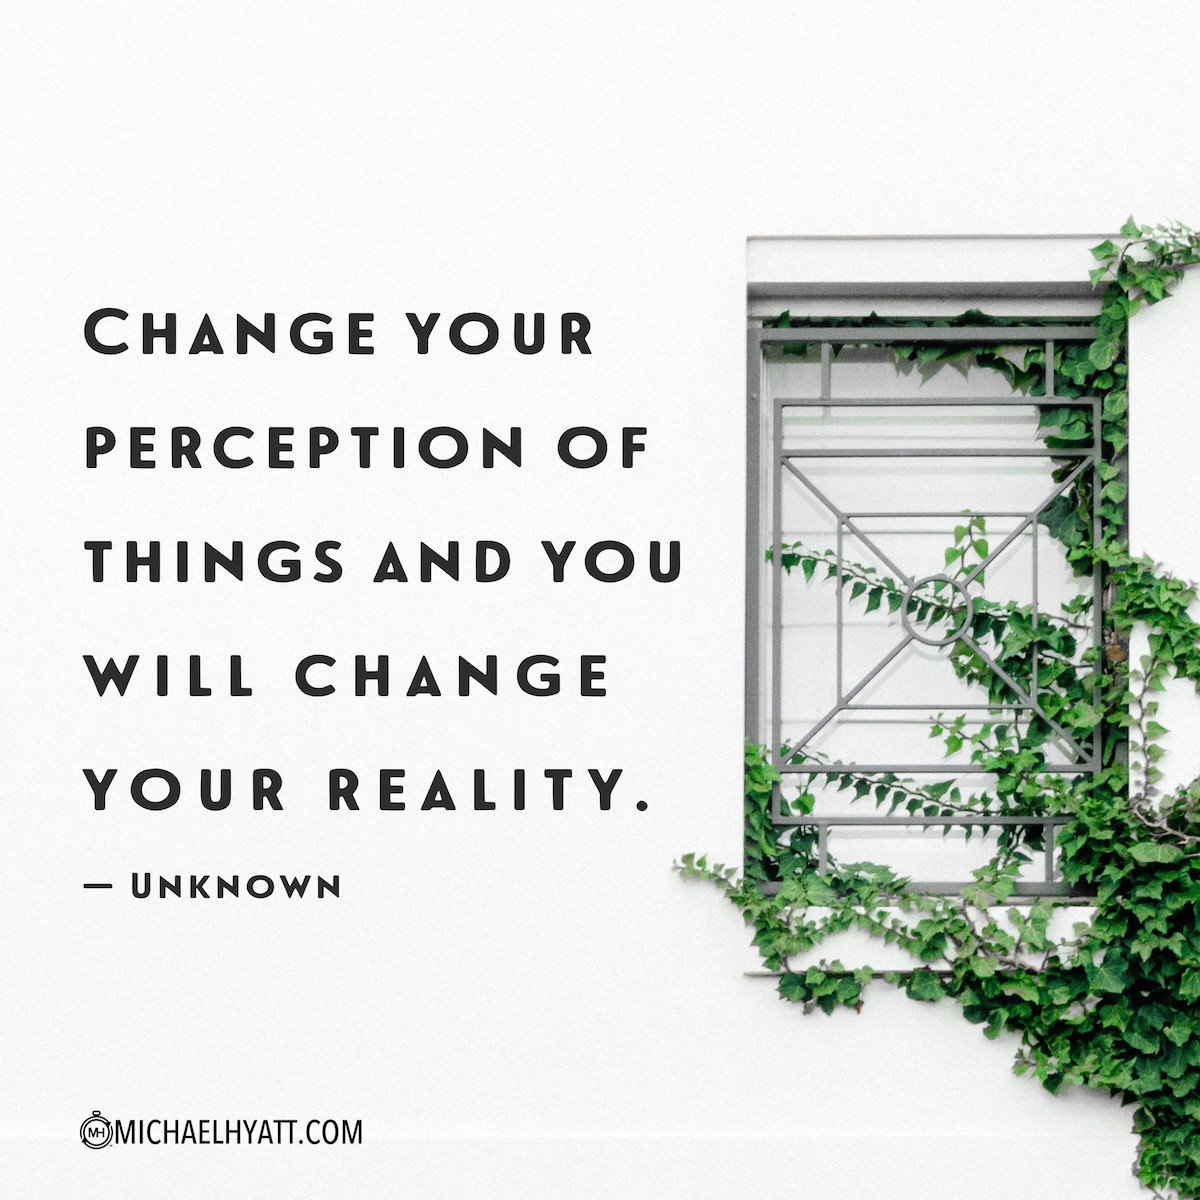 """""""Change your perception of things and you will change your reality."""" -Unknown https://t.co/reHQnayCqA"""